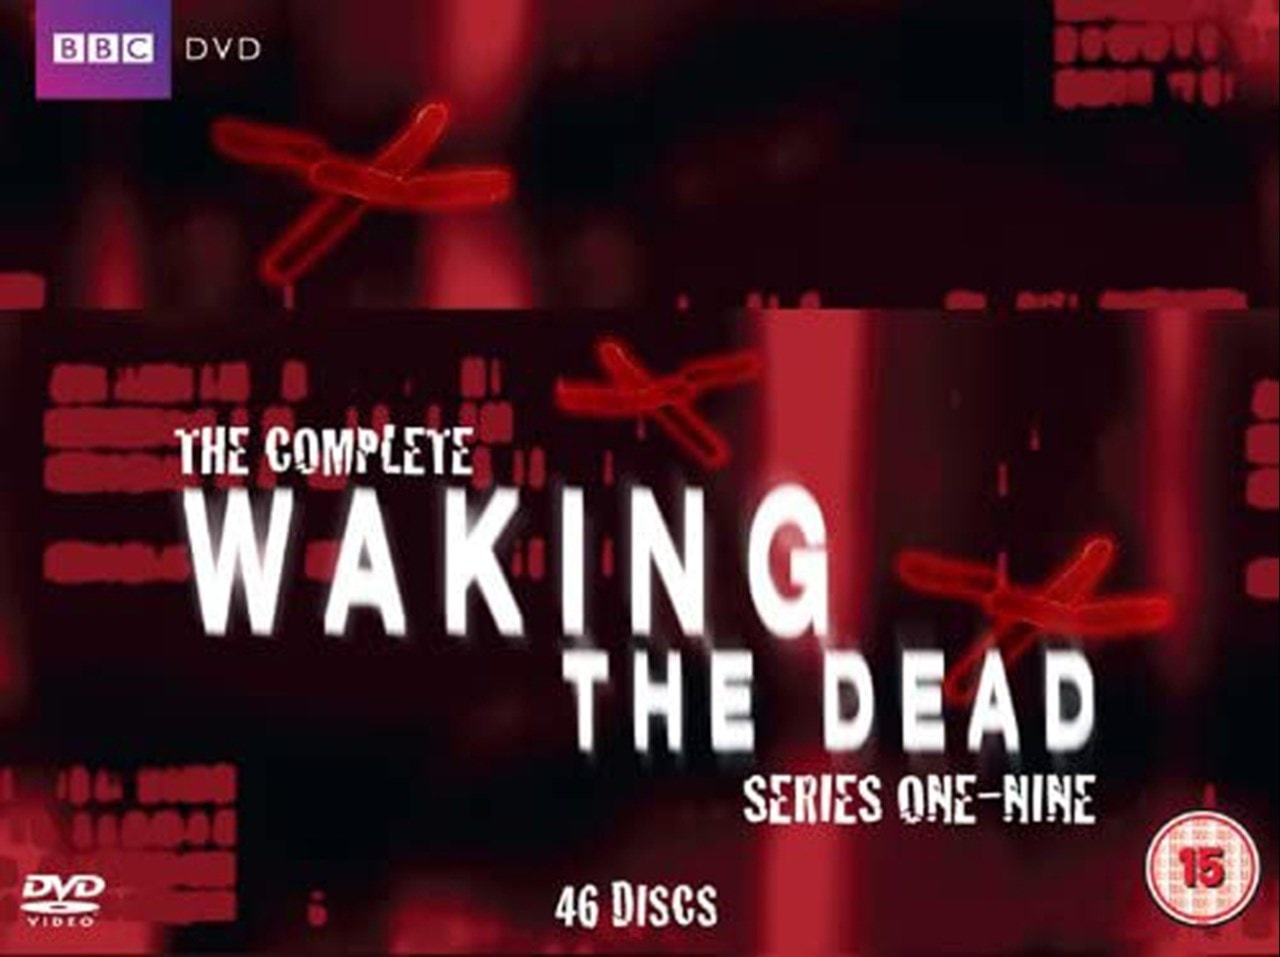 Waking the Dead: Series 1-9 - 1